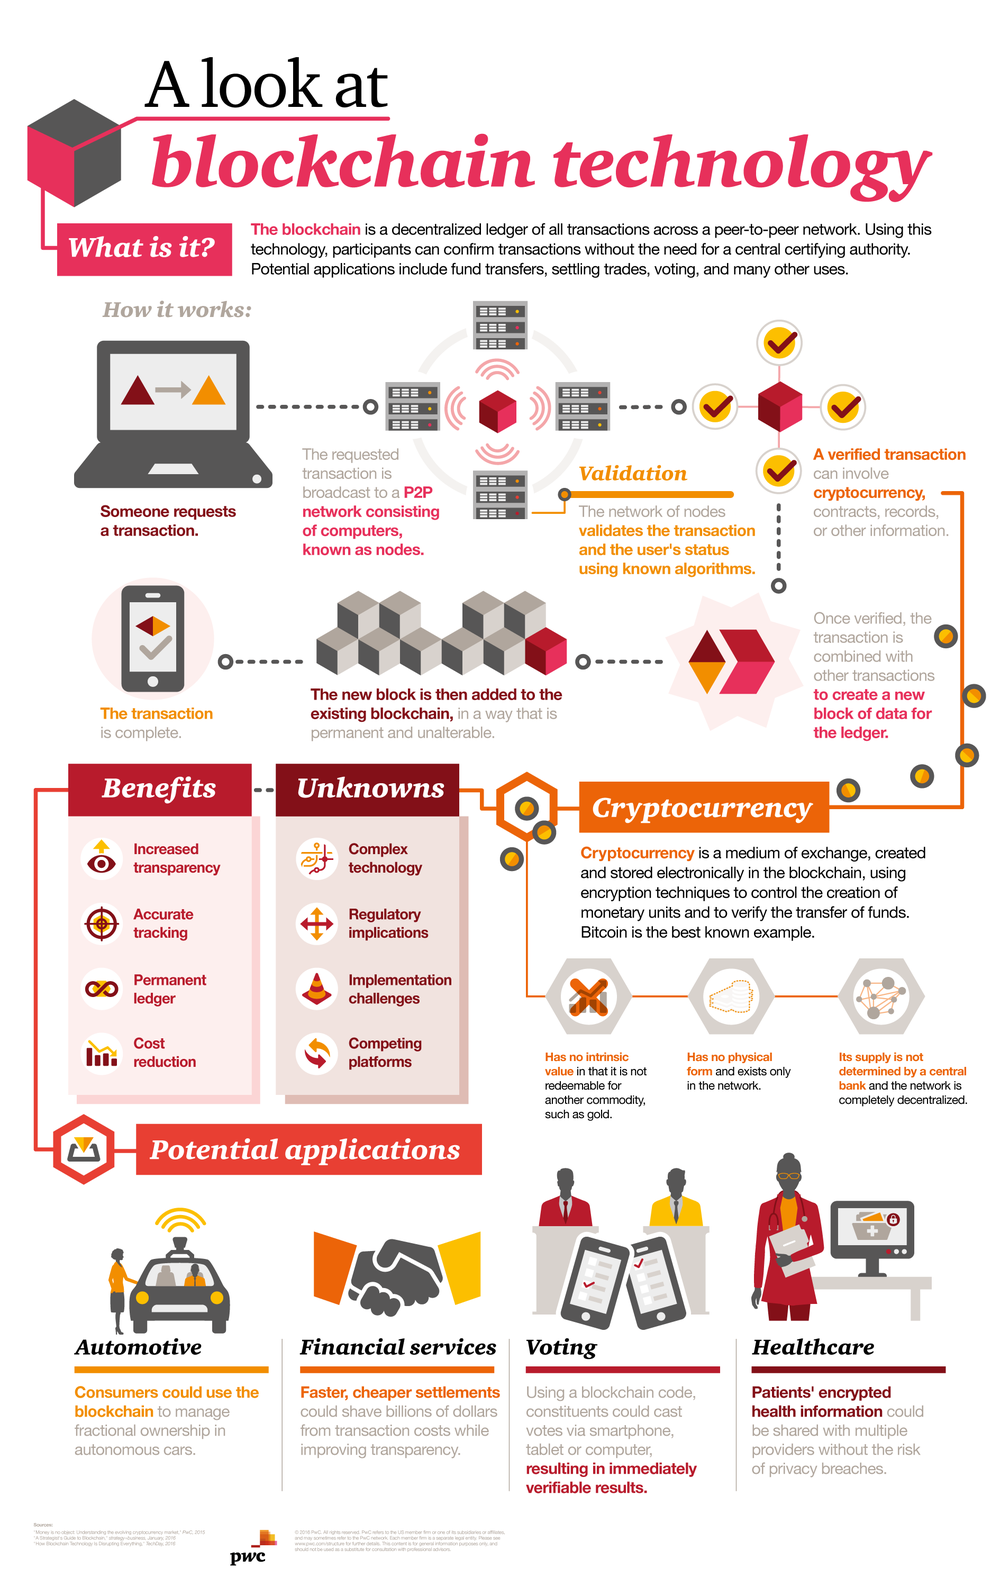 A Look At Blockchain Technology #Infographic